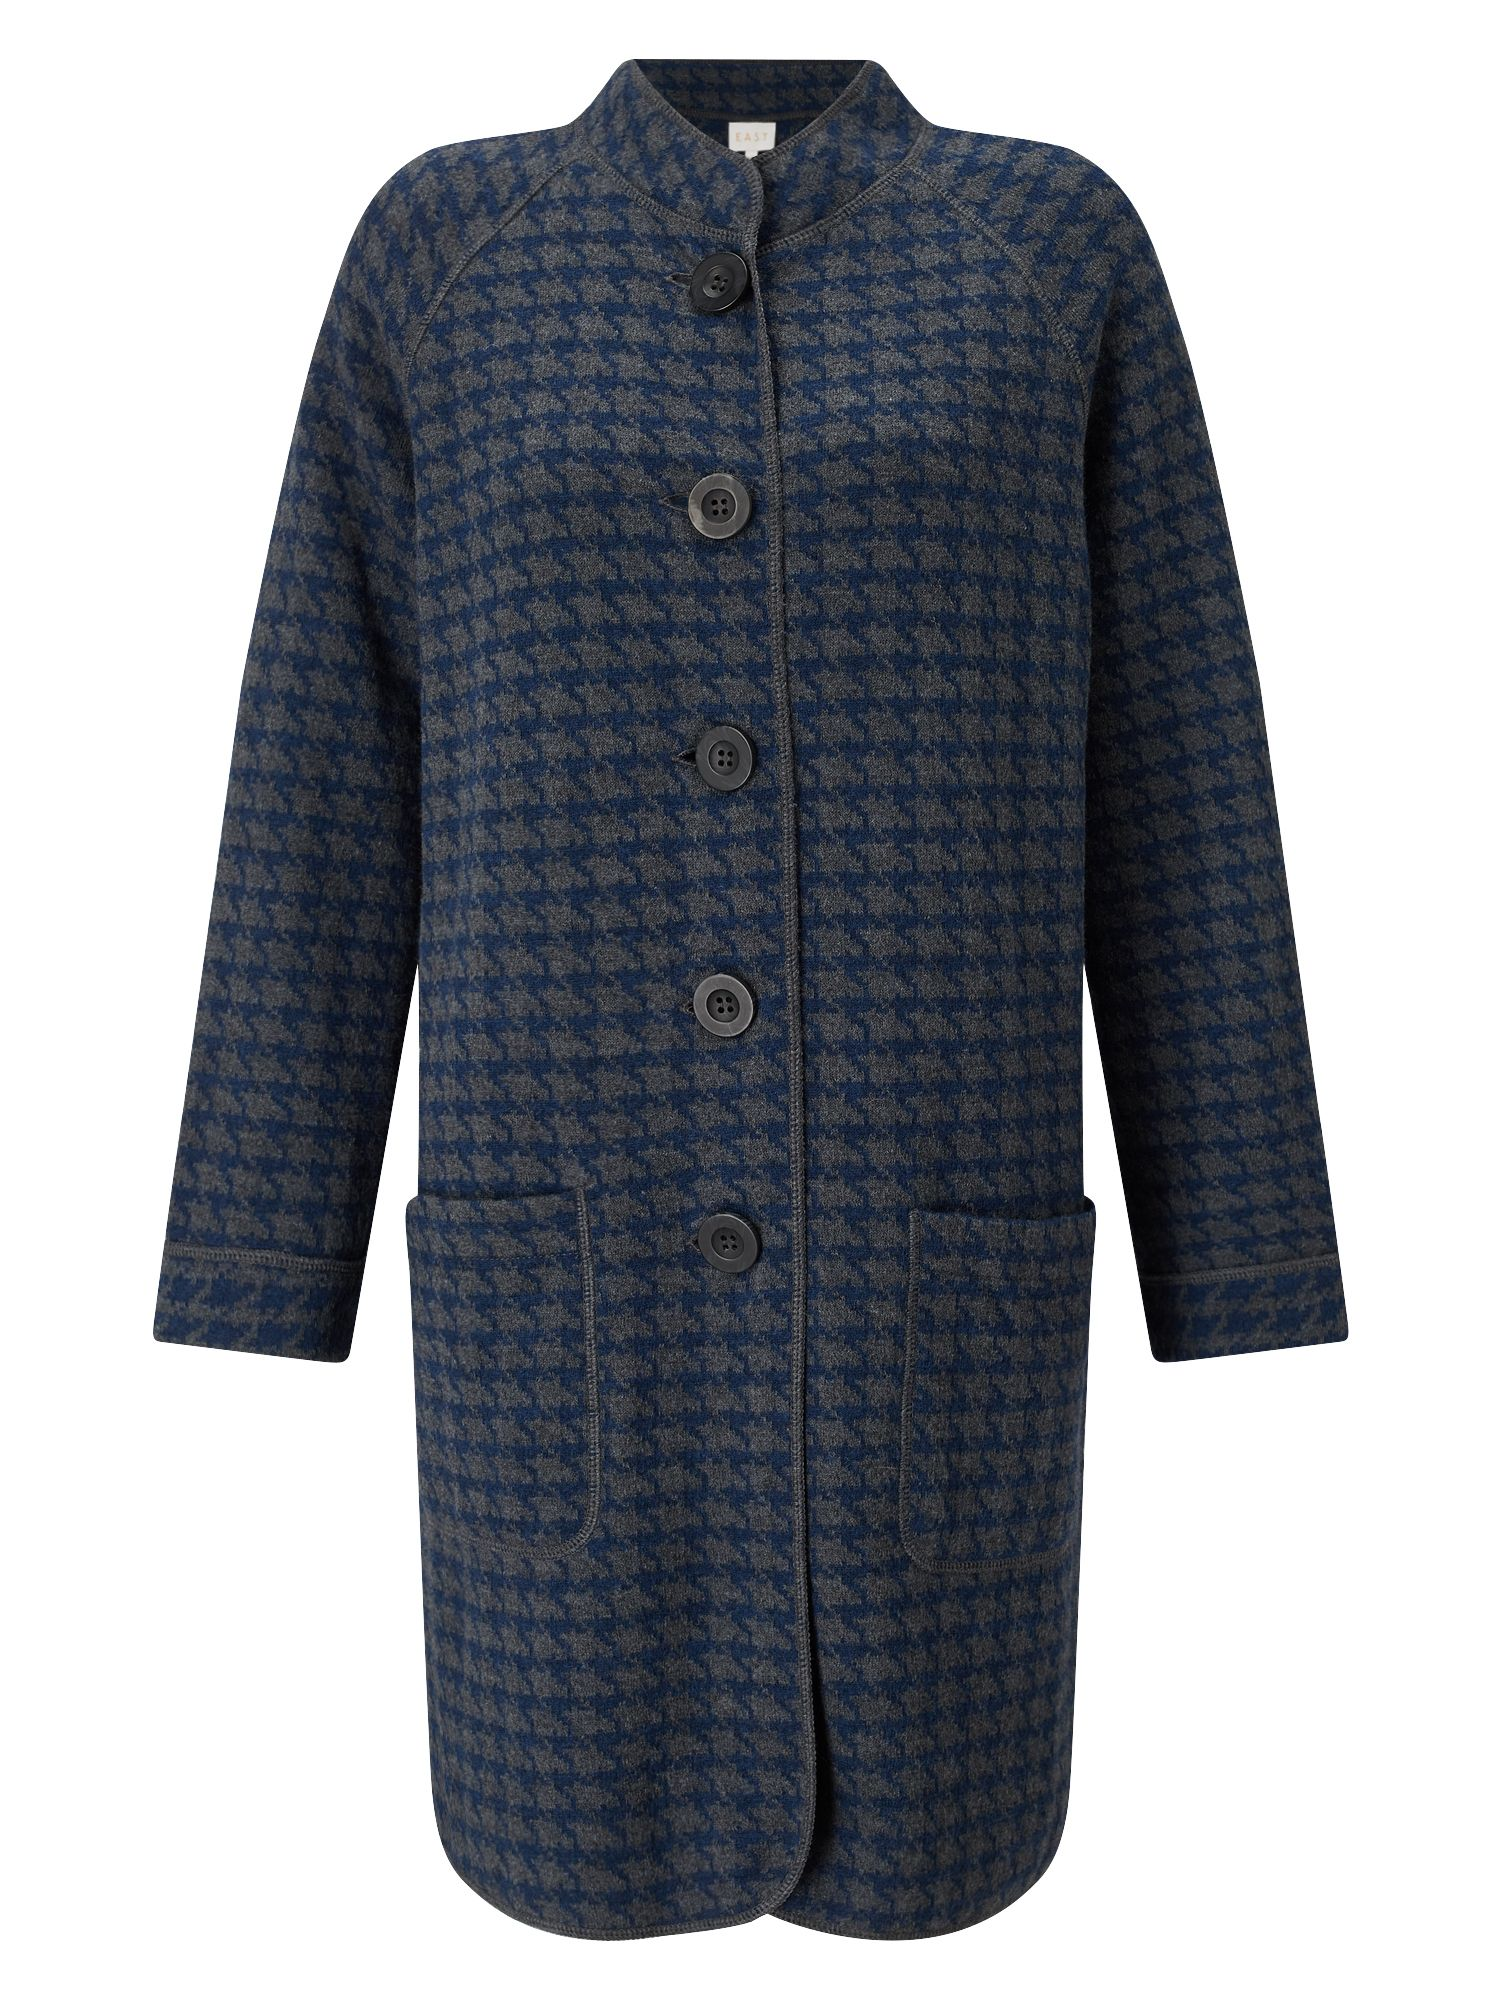 East Checked Hooded Knit Coat, Multi-Coloured